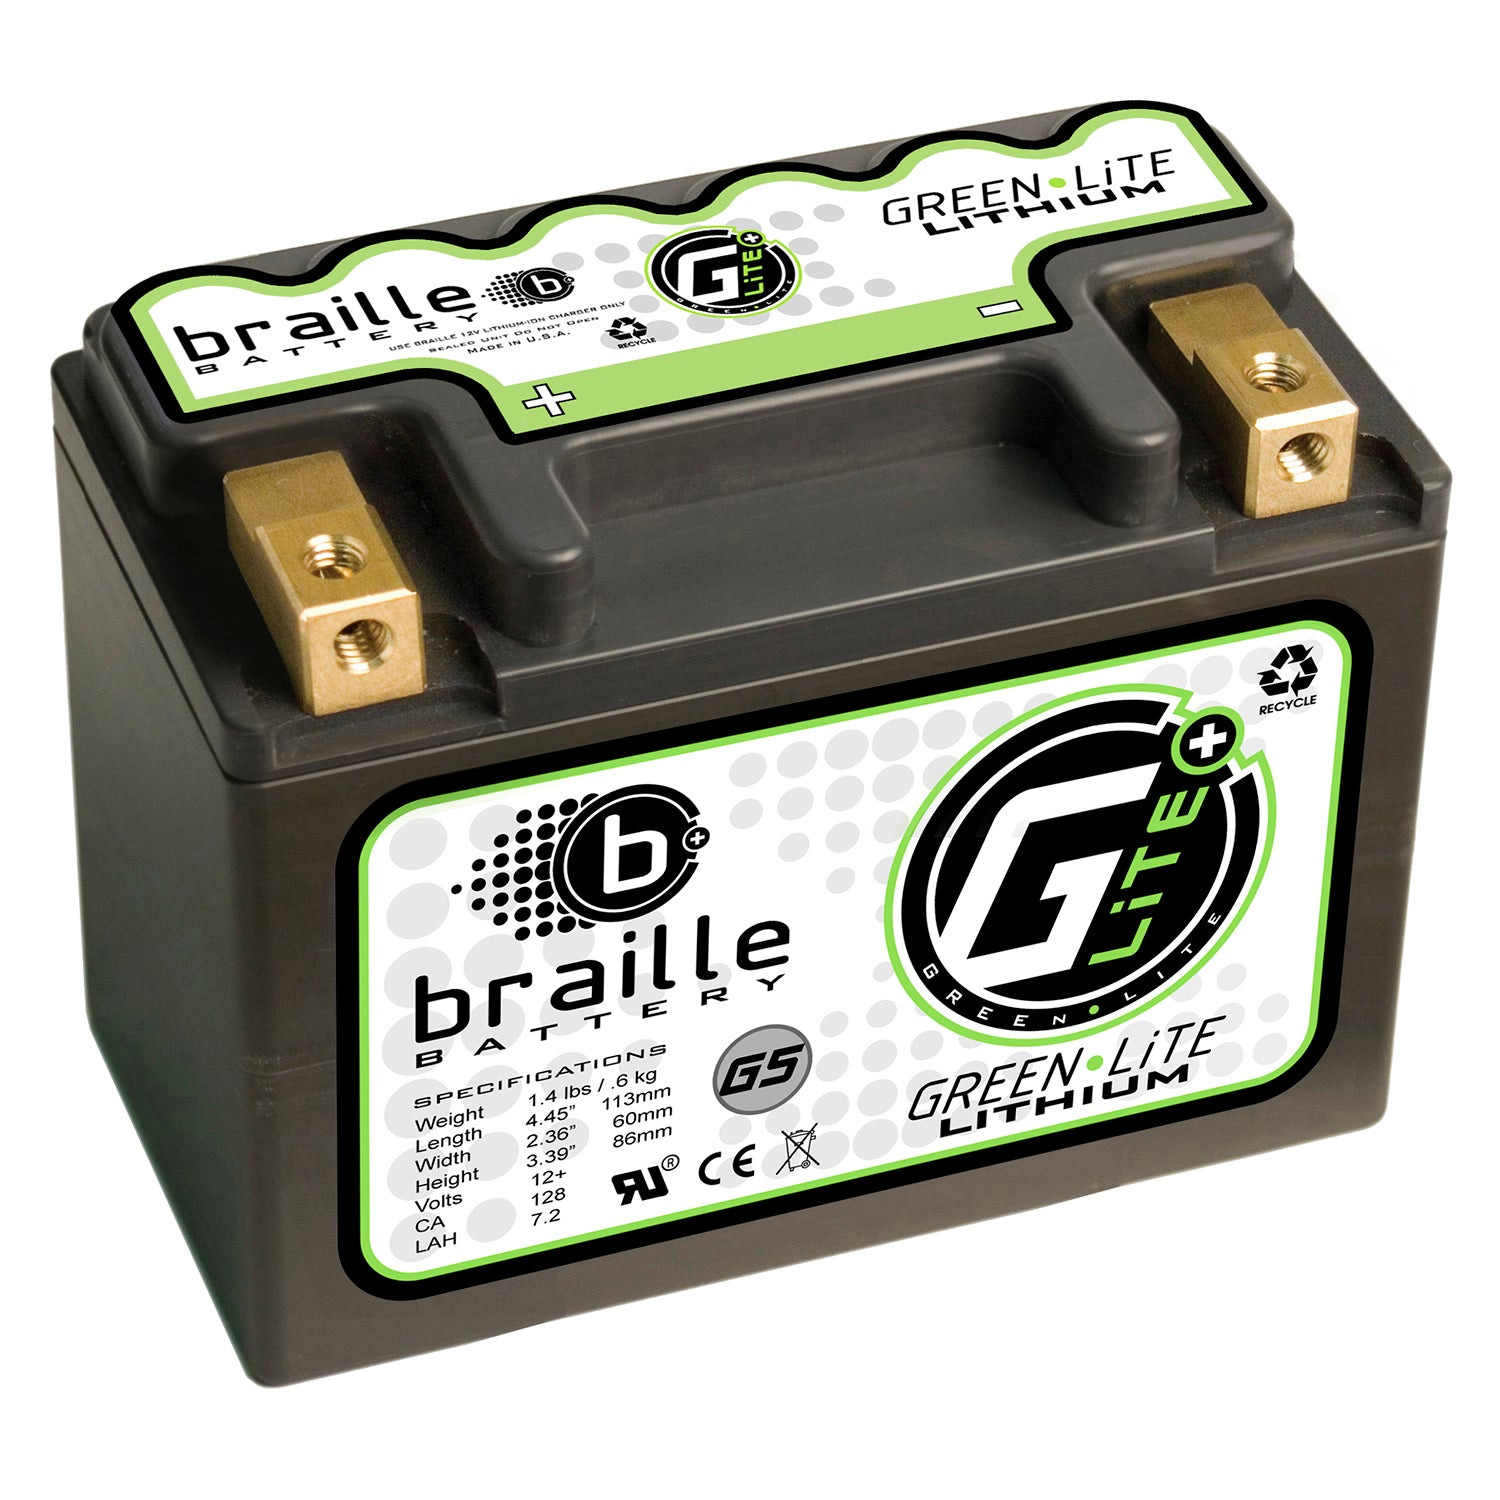 G5 - GreenLite lithium battery